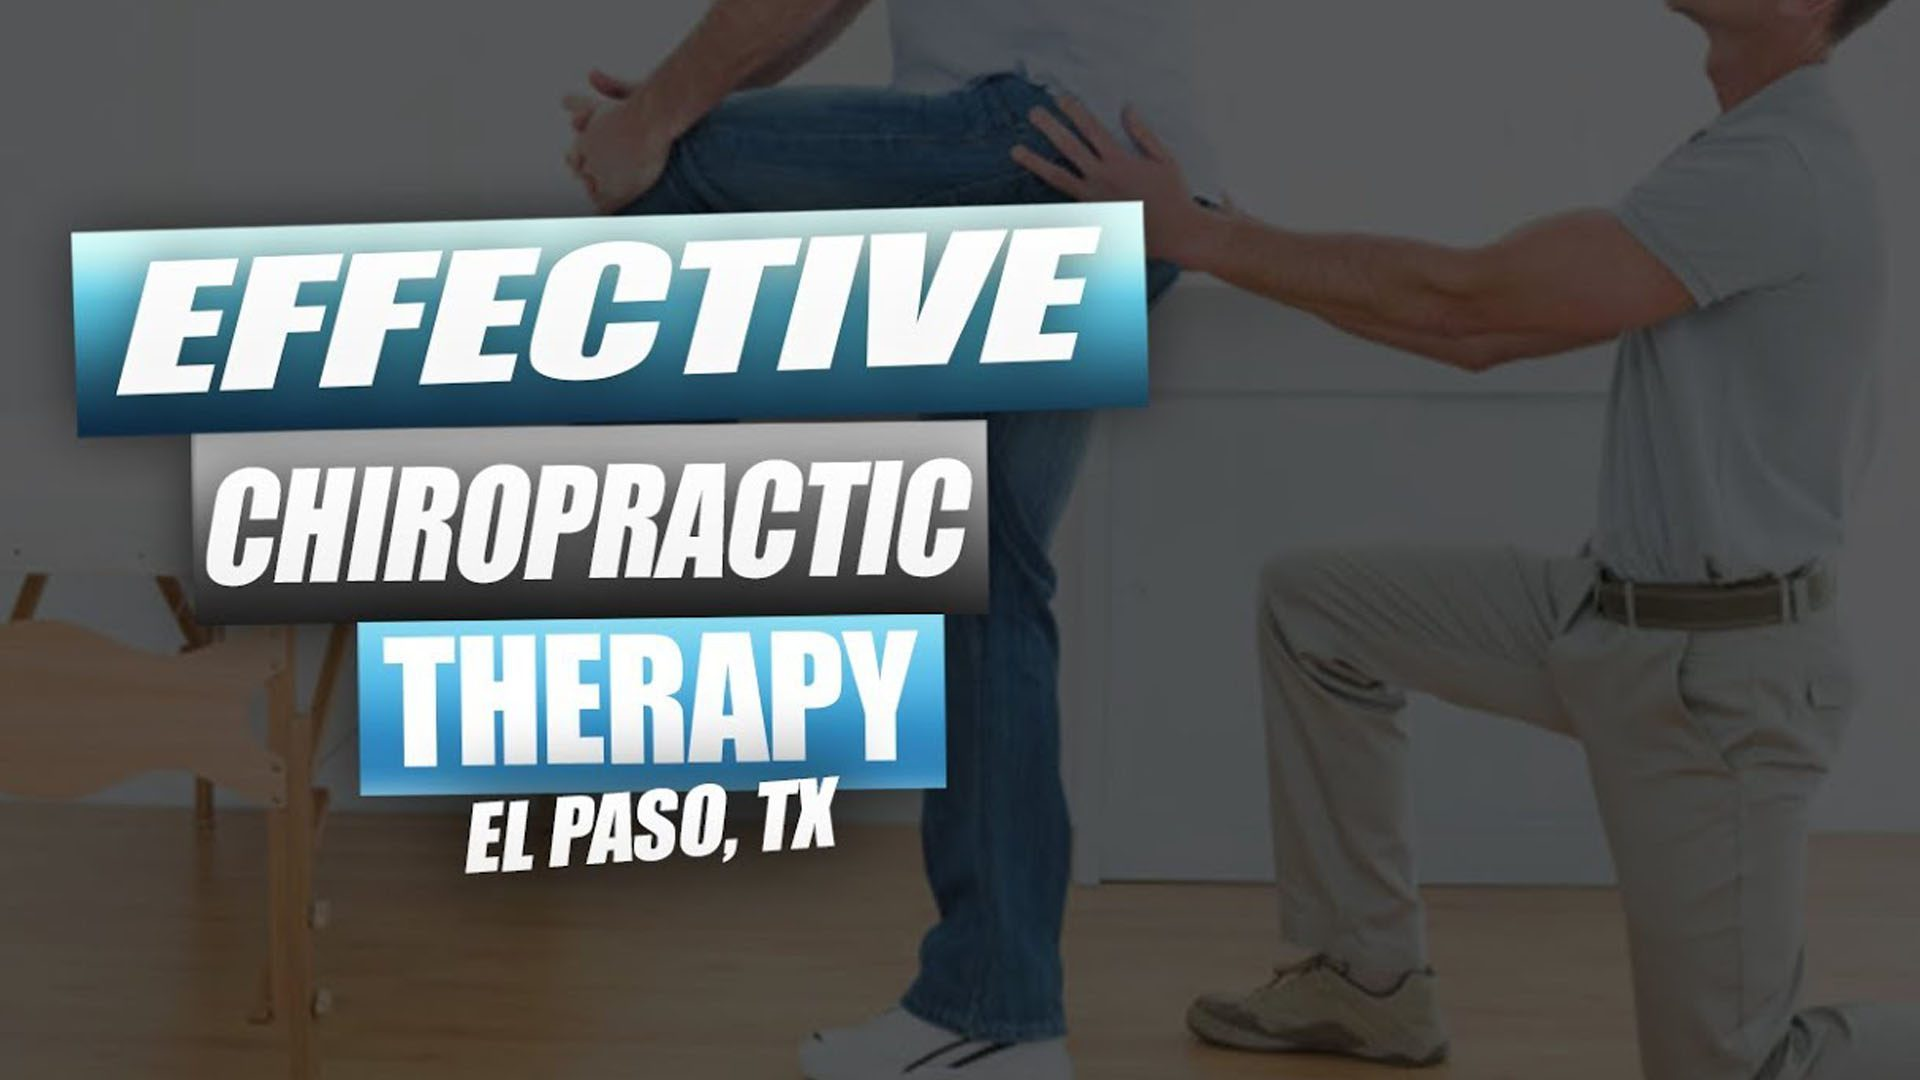 Effective Chiropractic Therapy | Video | El Paso, TX.